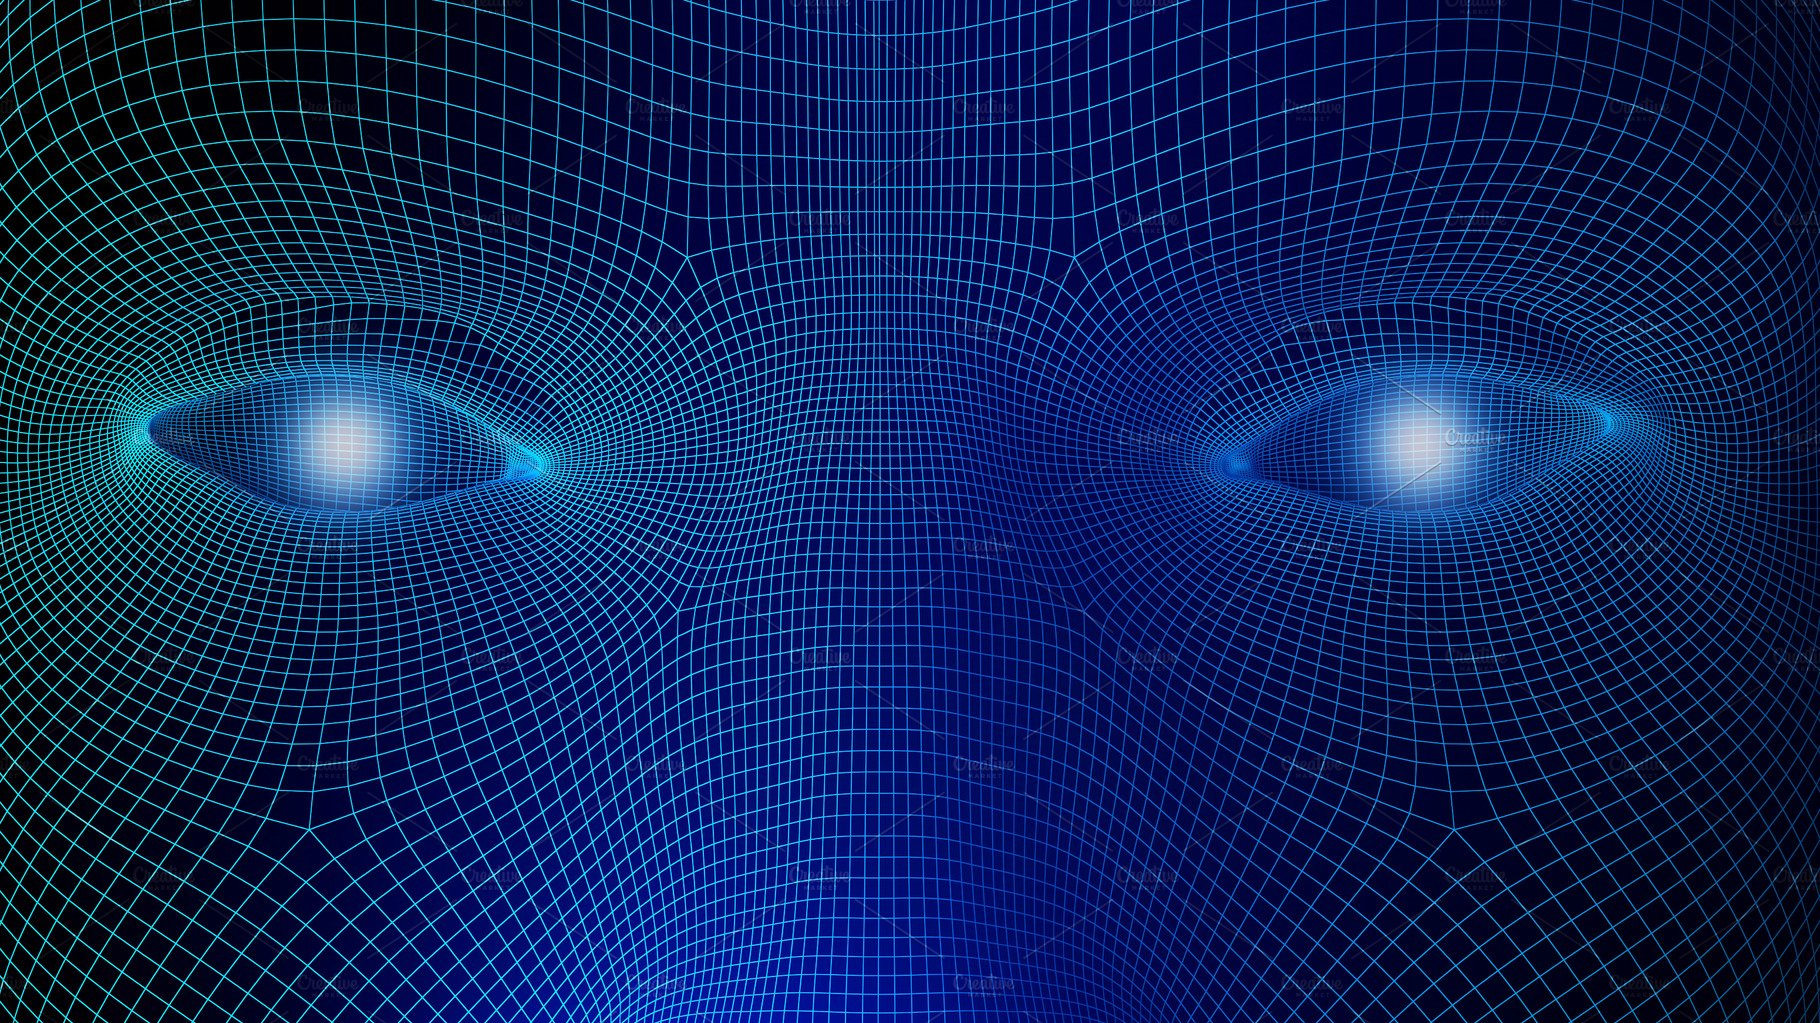 Human Eyes On Blue Background In Technology Concept Wireframe Of Abstract Globe Circuit Board And Binary Code Artificial Intelligence 3d Illustration Illustrations Creative Market